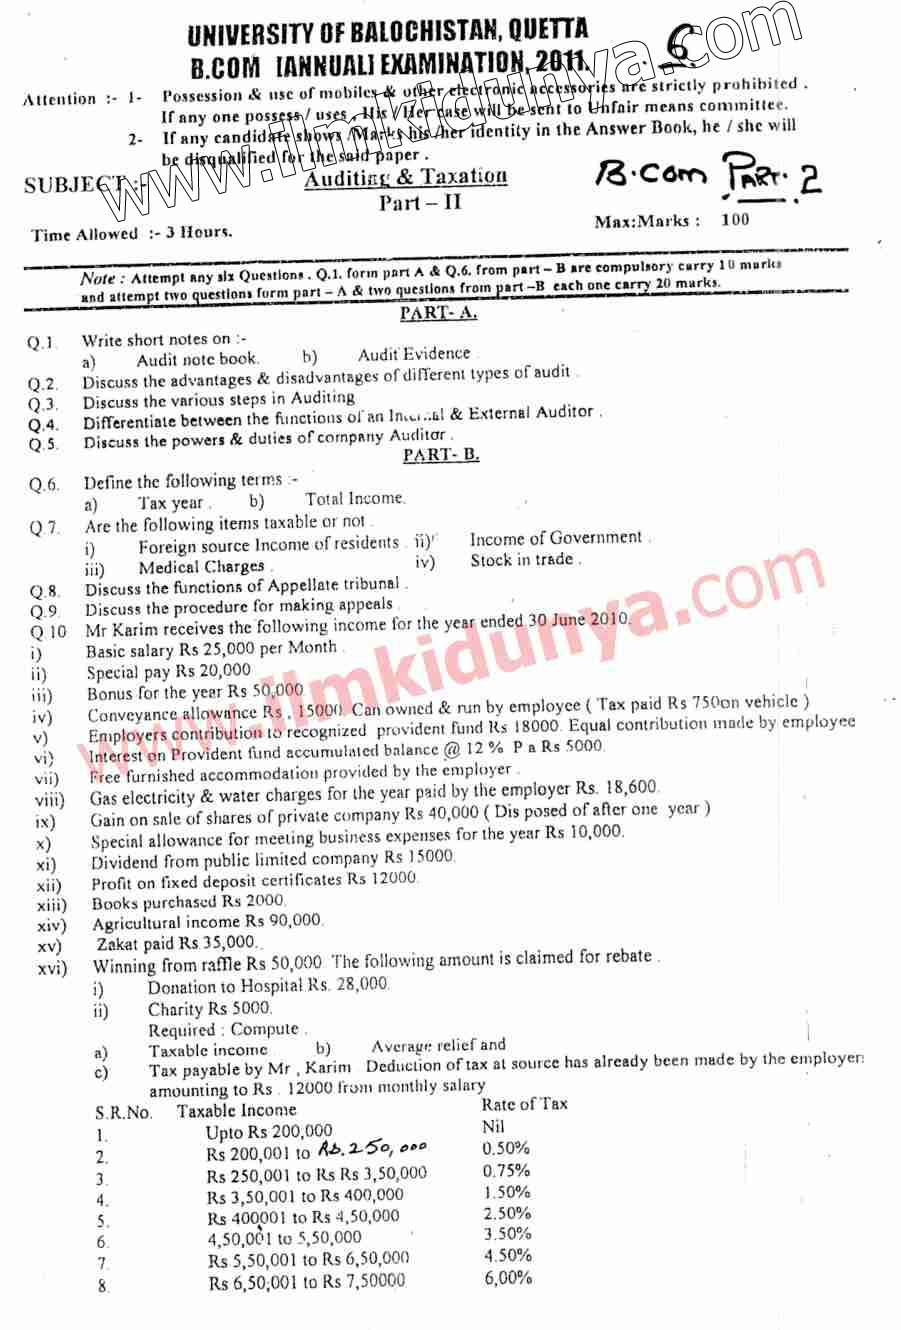 Past Papers 2011 Balochistan University BCom Part 2 Auditing and